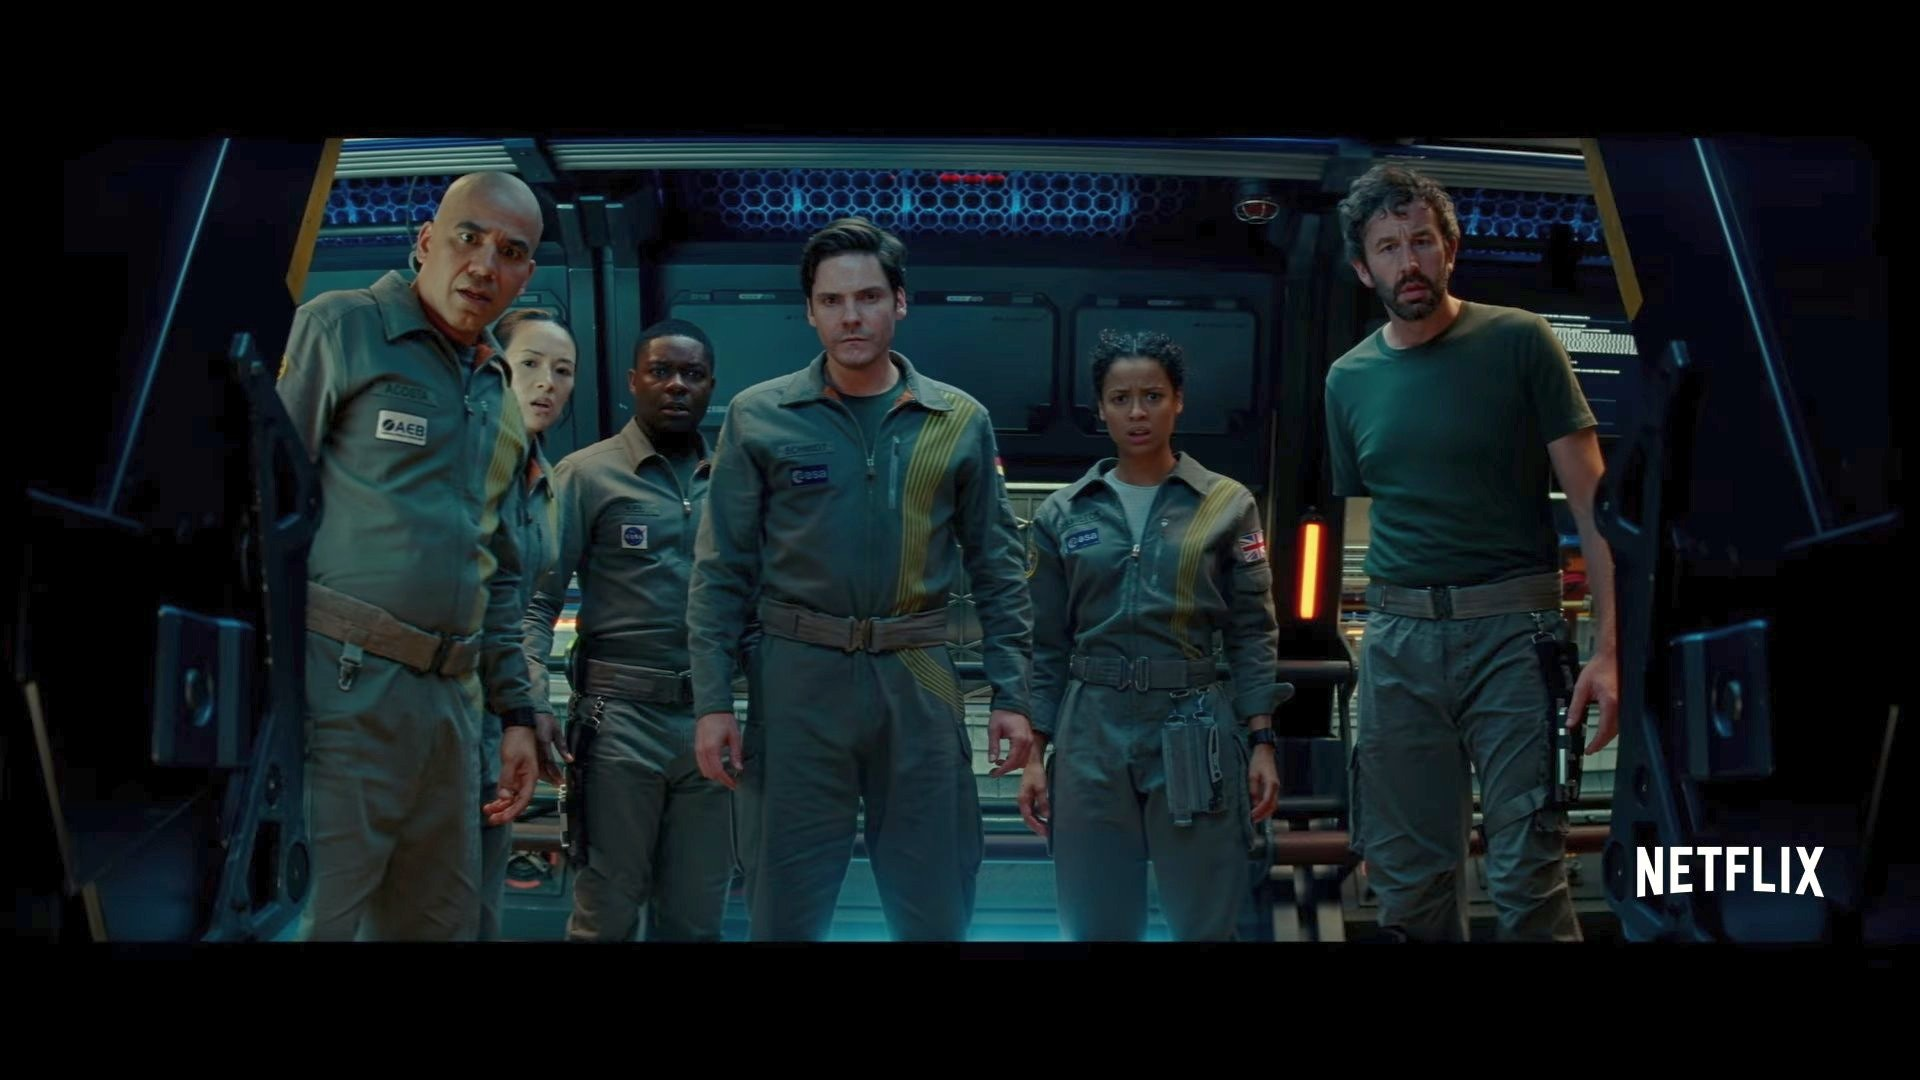 The crew of 'Cloverfield Station'.